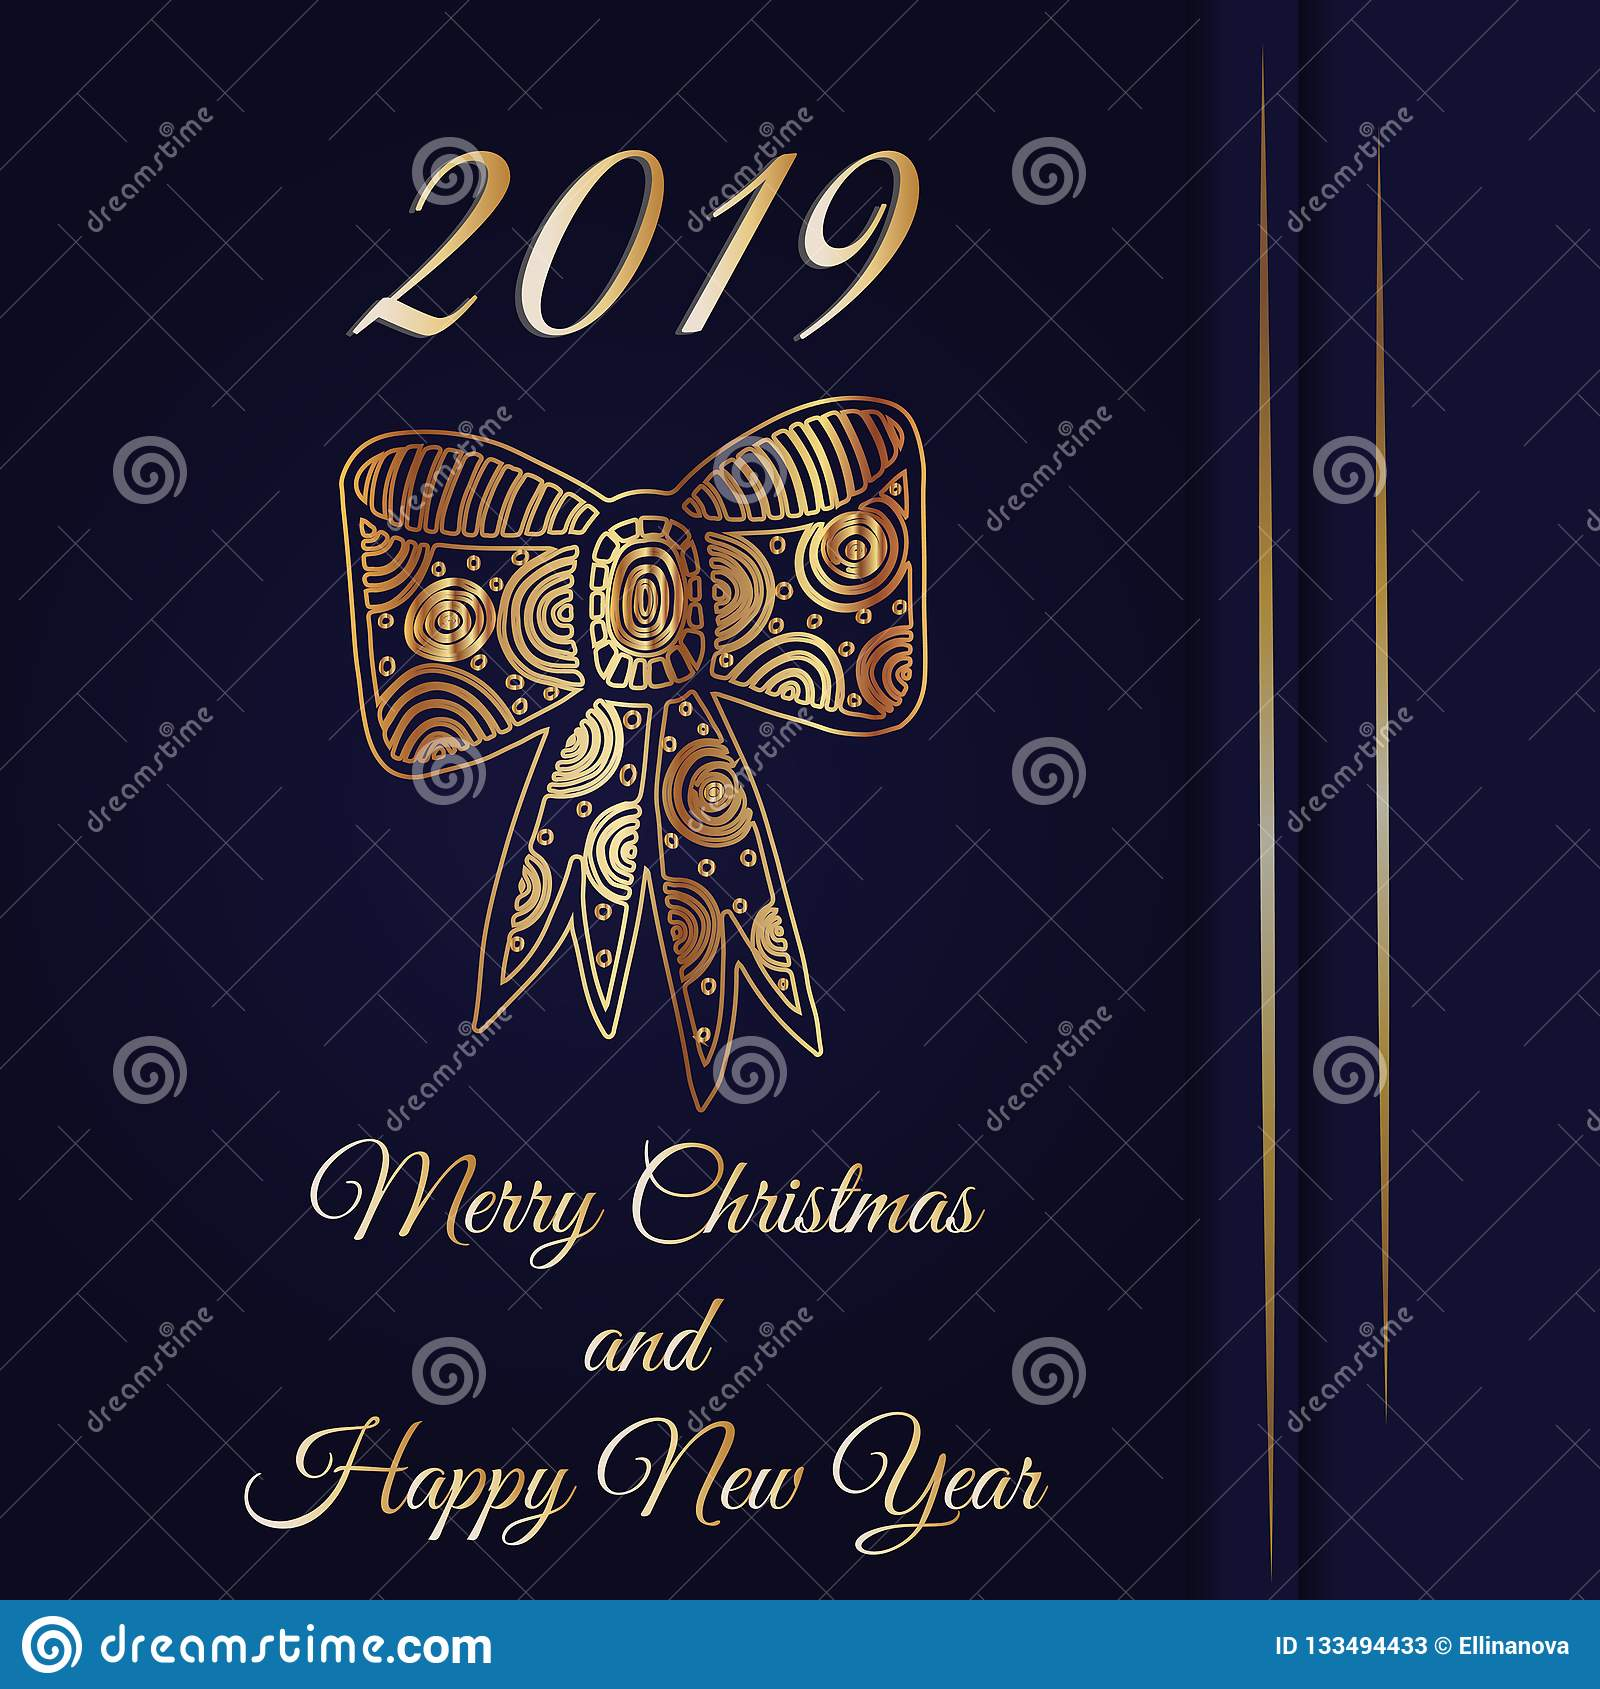 iinvitation card with 2019 number for christmas or new year holiday luxury gold vintage frame victorian bannerbaroque style bookletfashion pattern